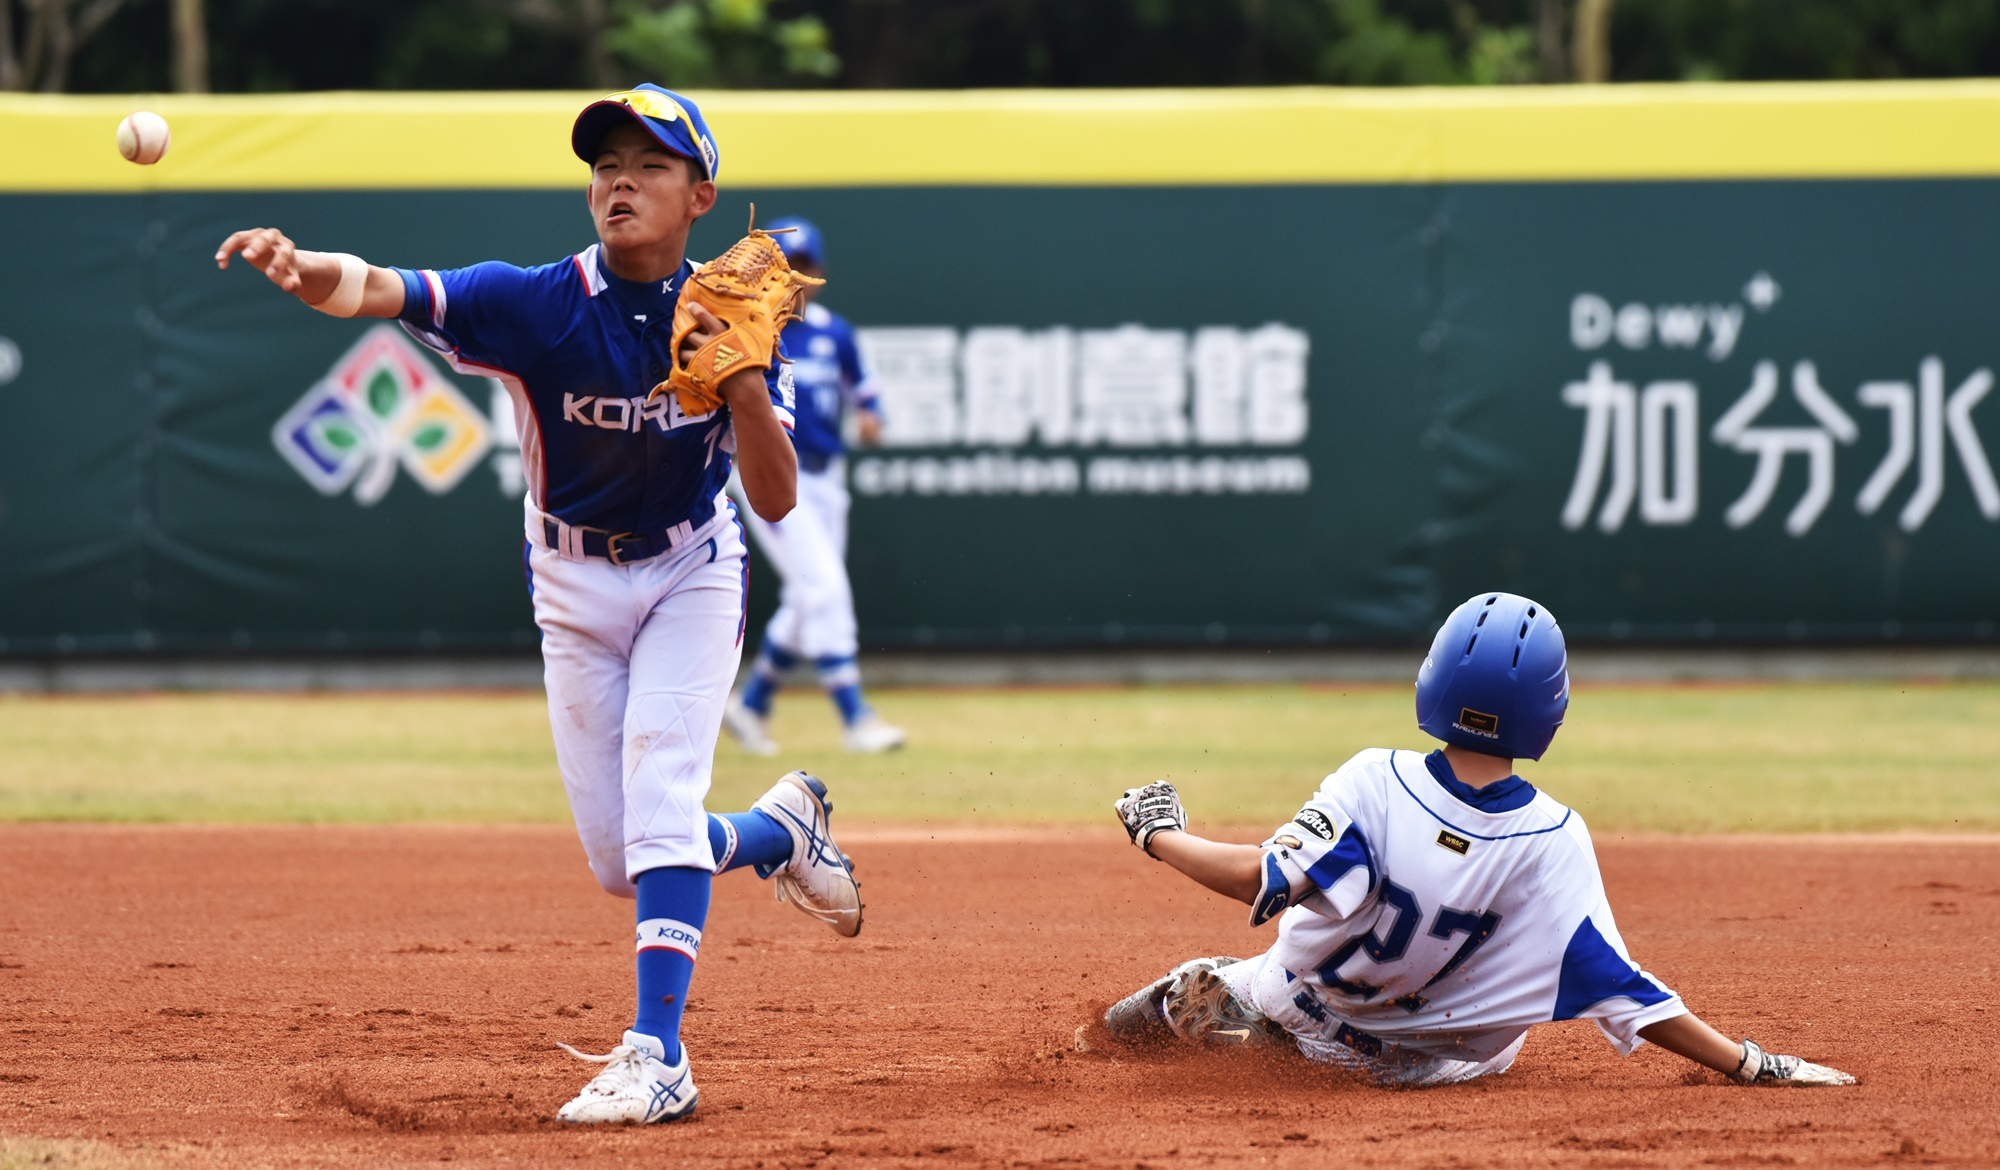 Italy played a brave game. Lucciano Munoz tries to reach second against shortstop Park Yechan